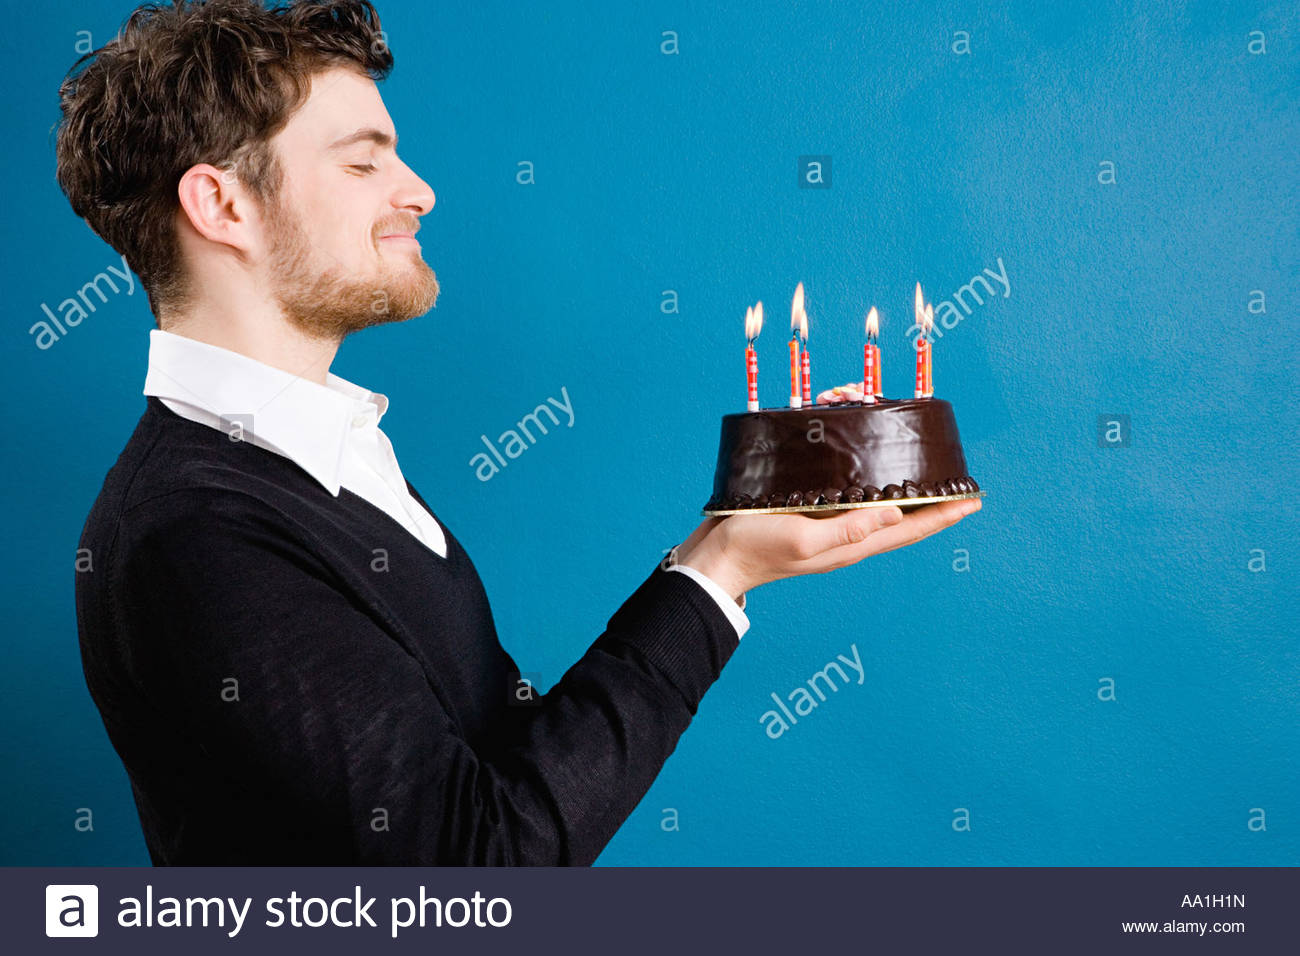 Young man with a birthday cake Stock Photo Royalty Free Image